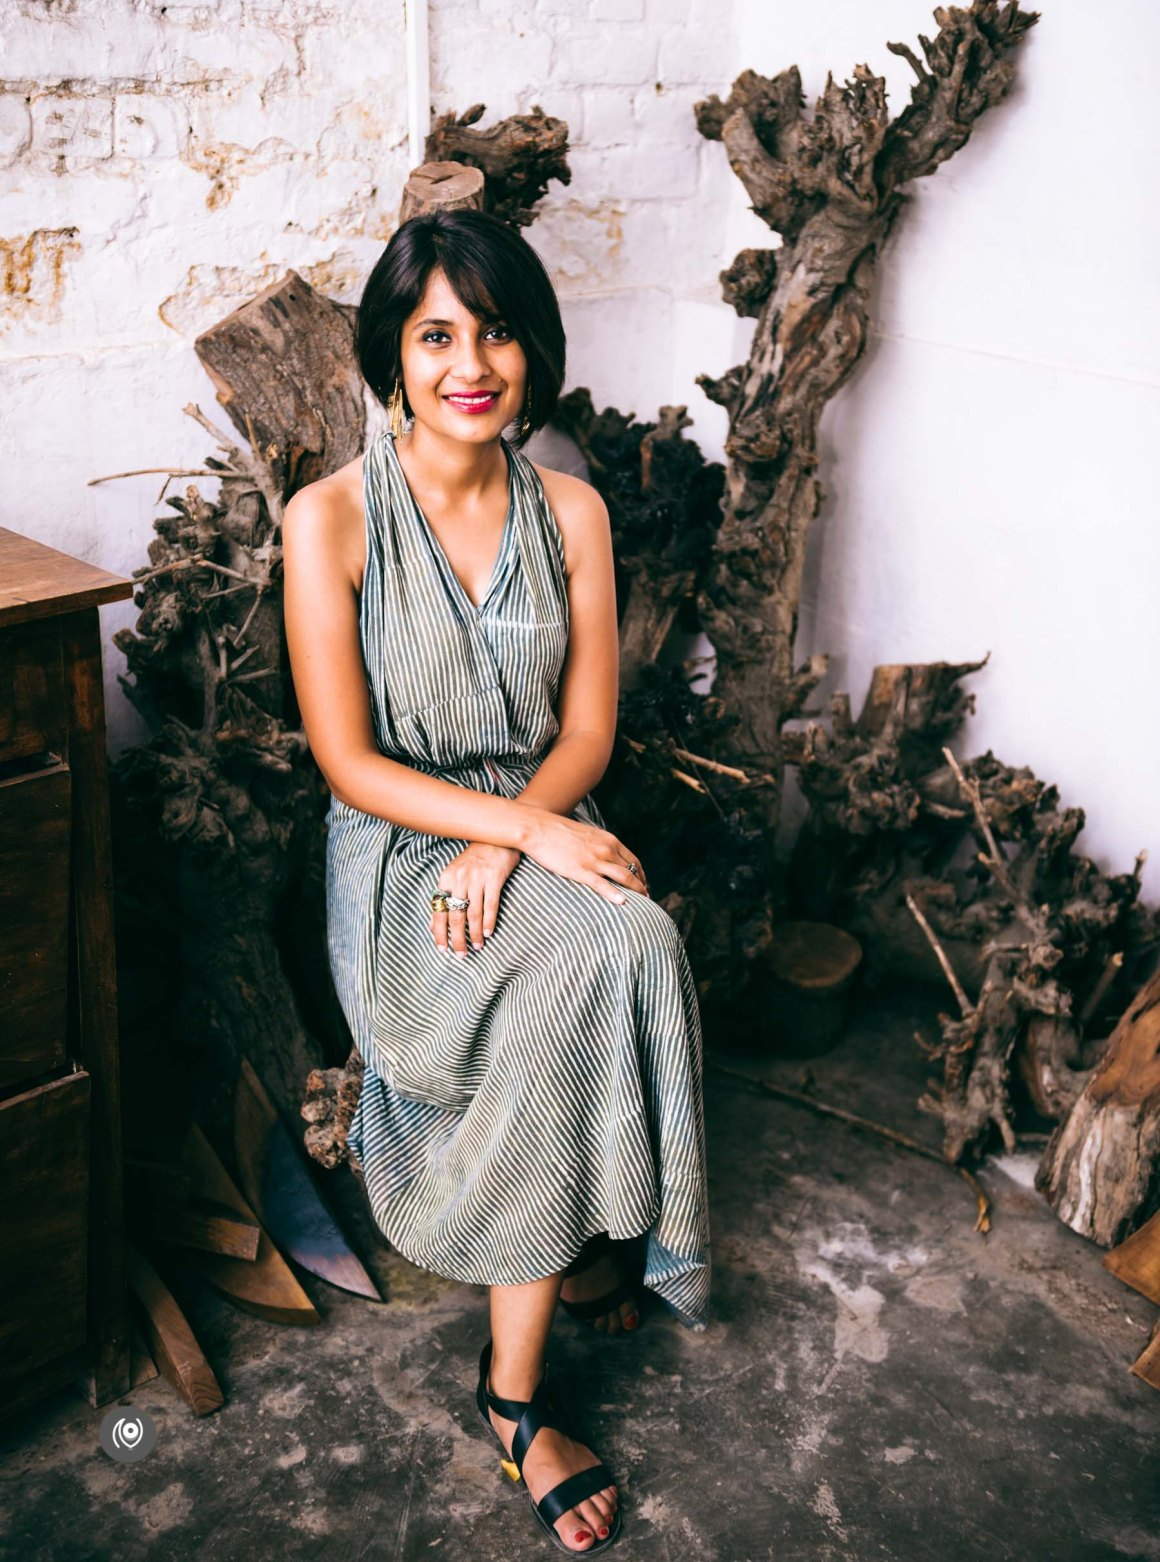 Advaeita Mathur, Studio Metallurgy, Gladd, Wood, Metal, Jewellery Designer, Jewelry Designer, Sculptor, Artist, Designer, Industrial Design, Naina.co, Naina Redhu, Indian Metal Artist, Studio, EyesForInfluencers, People Profiles, Interview Series, New Delhi, Professional Photographer, Professional Blogger, Lifestyle Photographer, Lifestyle Blogger, Environmental Portaiture, Portraits at work